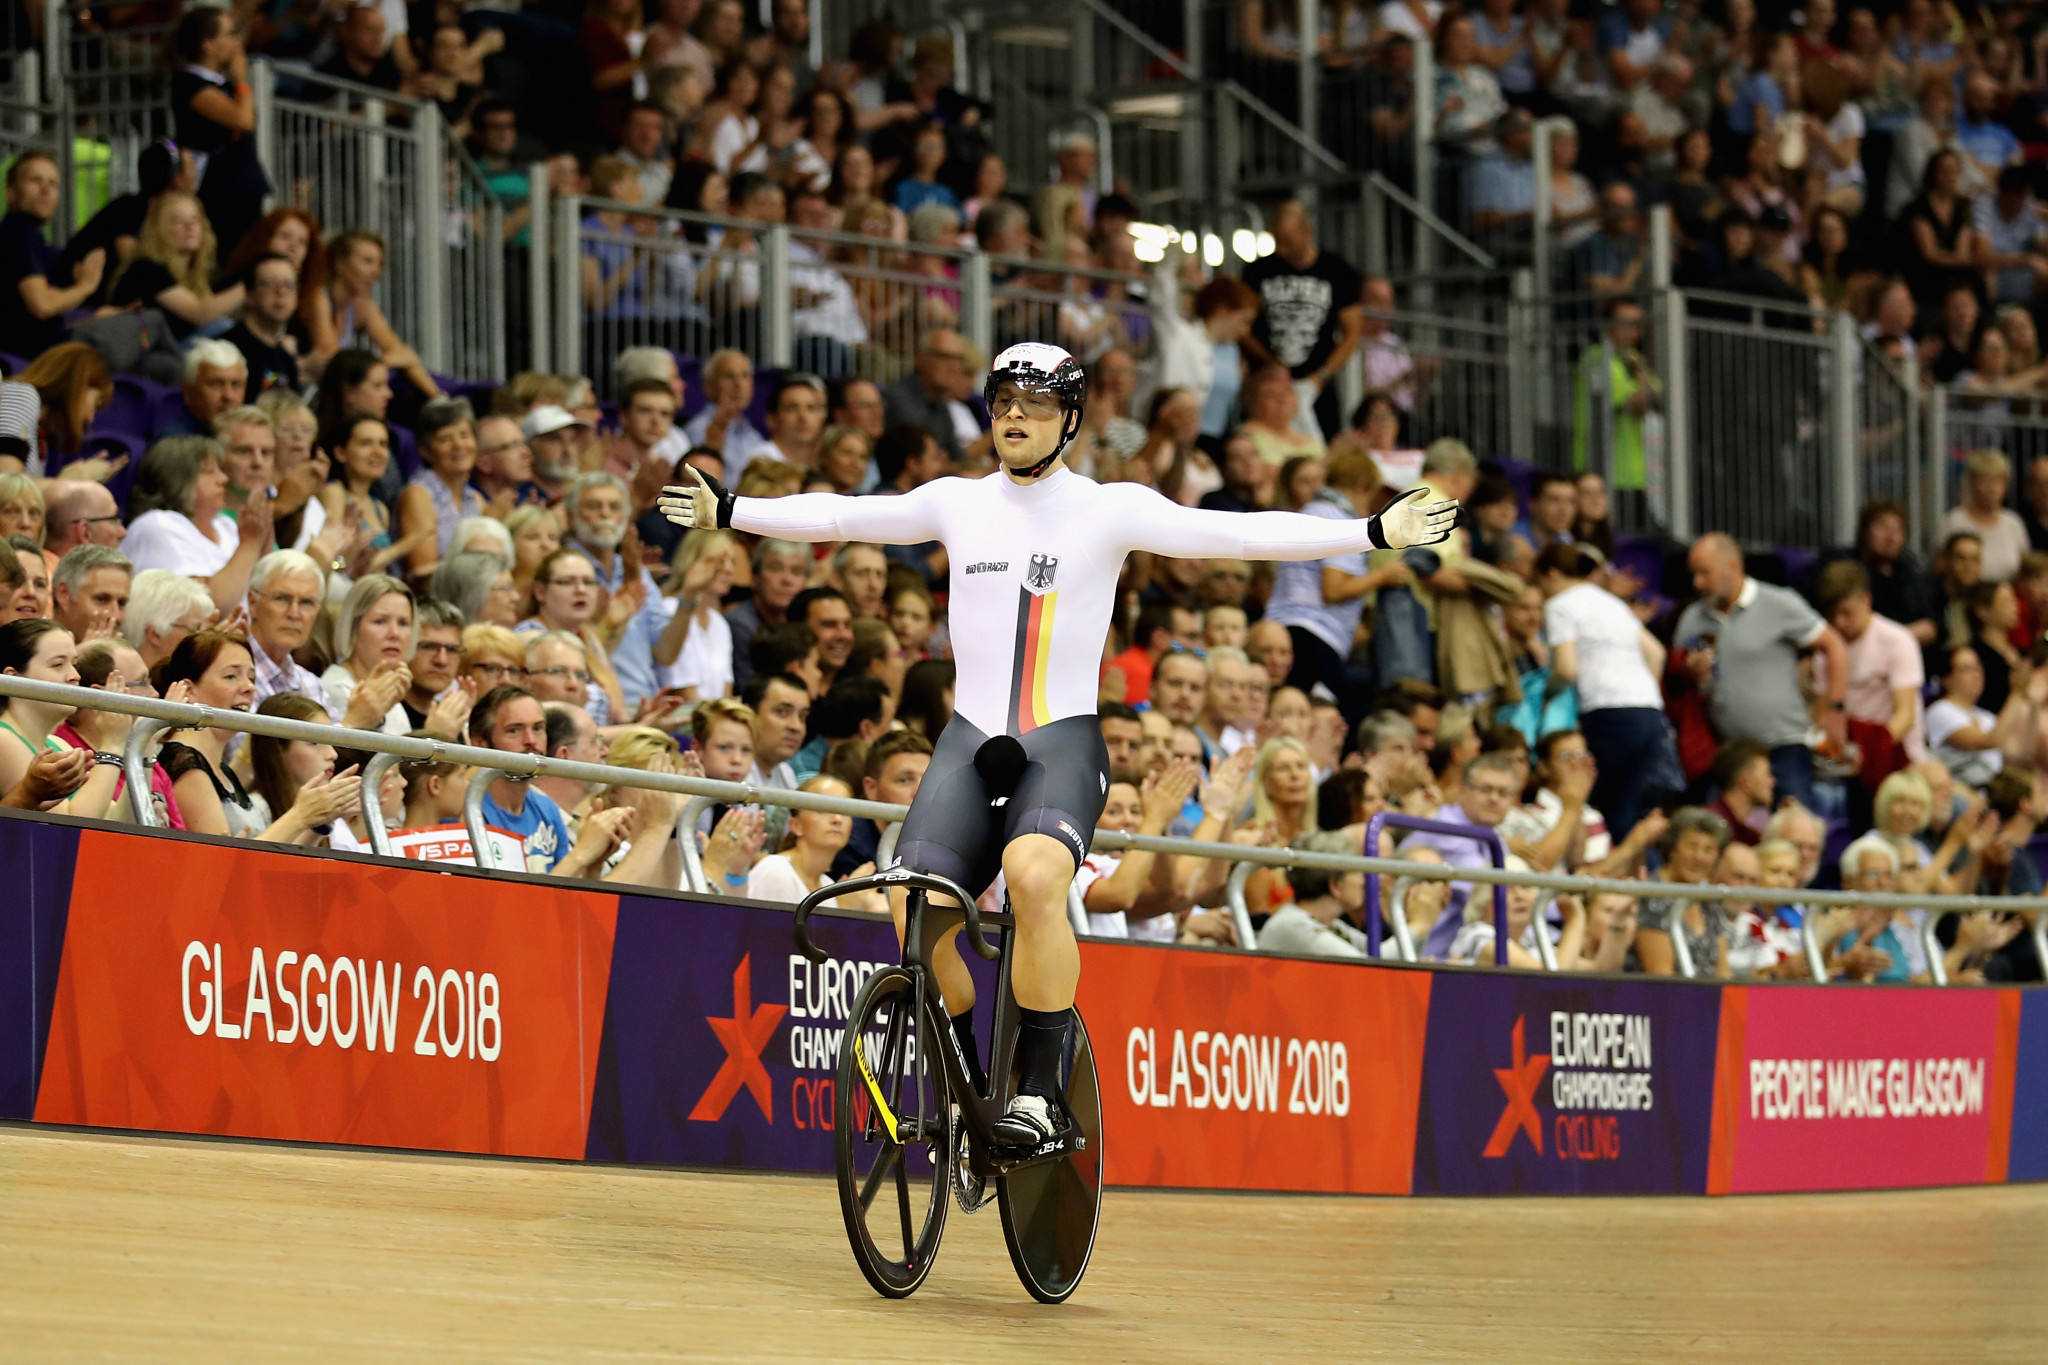 Stefan Botticher triumphed in the men's keirin event to conclude the track cycling programme ©Getty Images